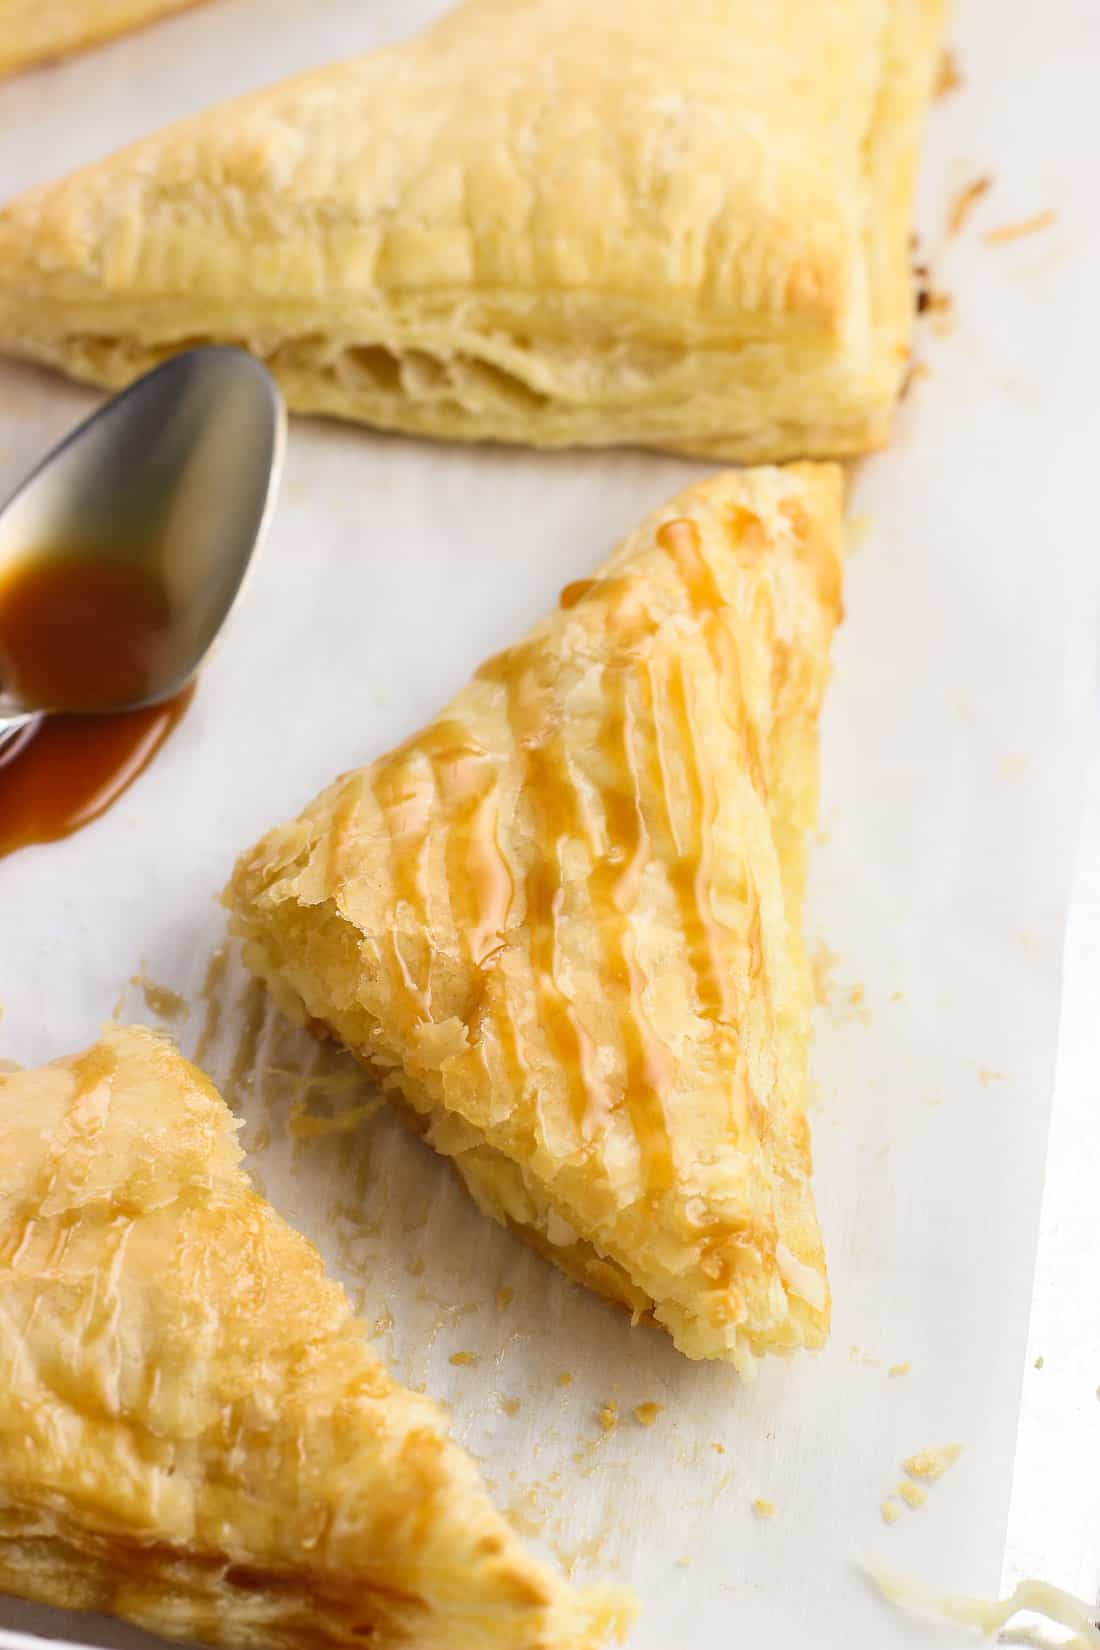 A flaky turnover cut in half and drizzled with caramel sauce